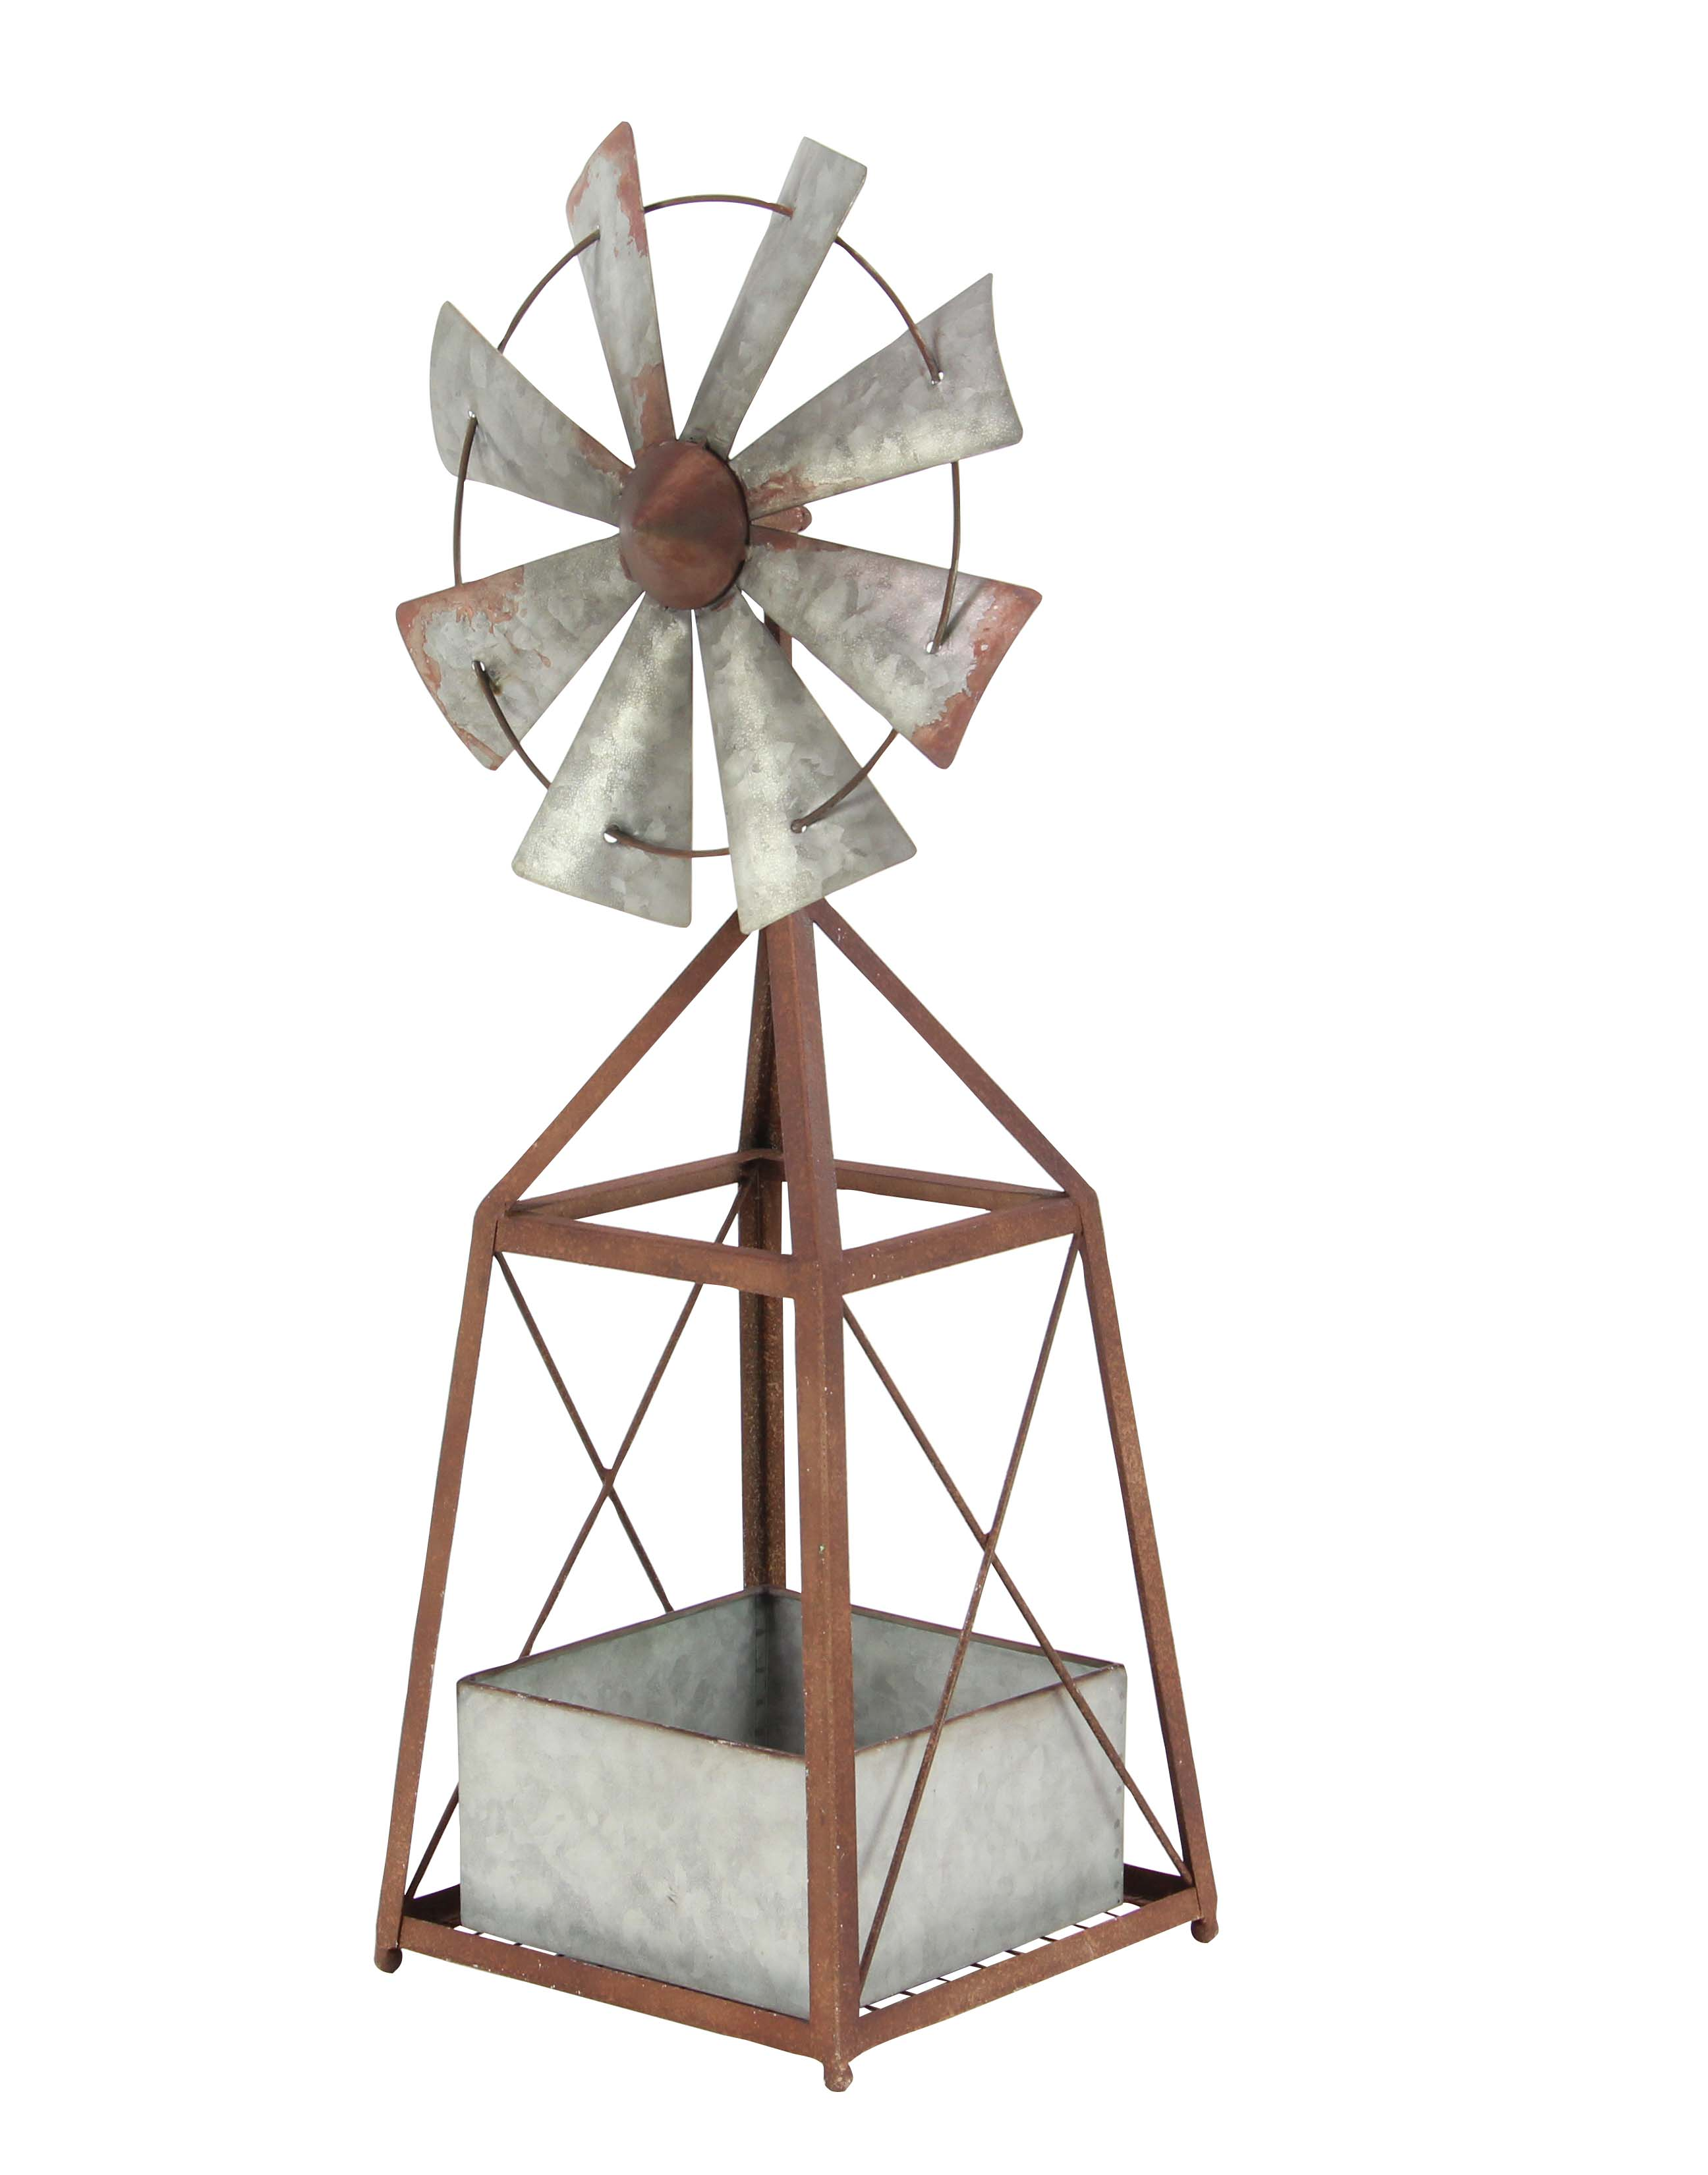 Decmode 34 Inch Farmhouse Iron Windmill Planter, Brown by DecMode